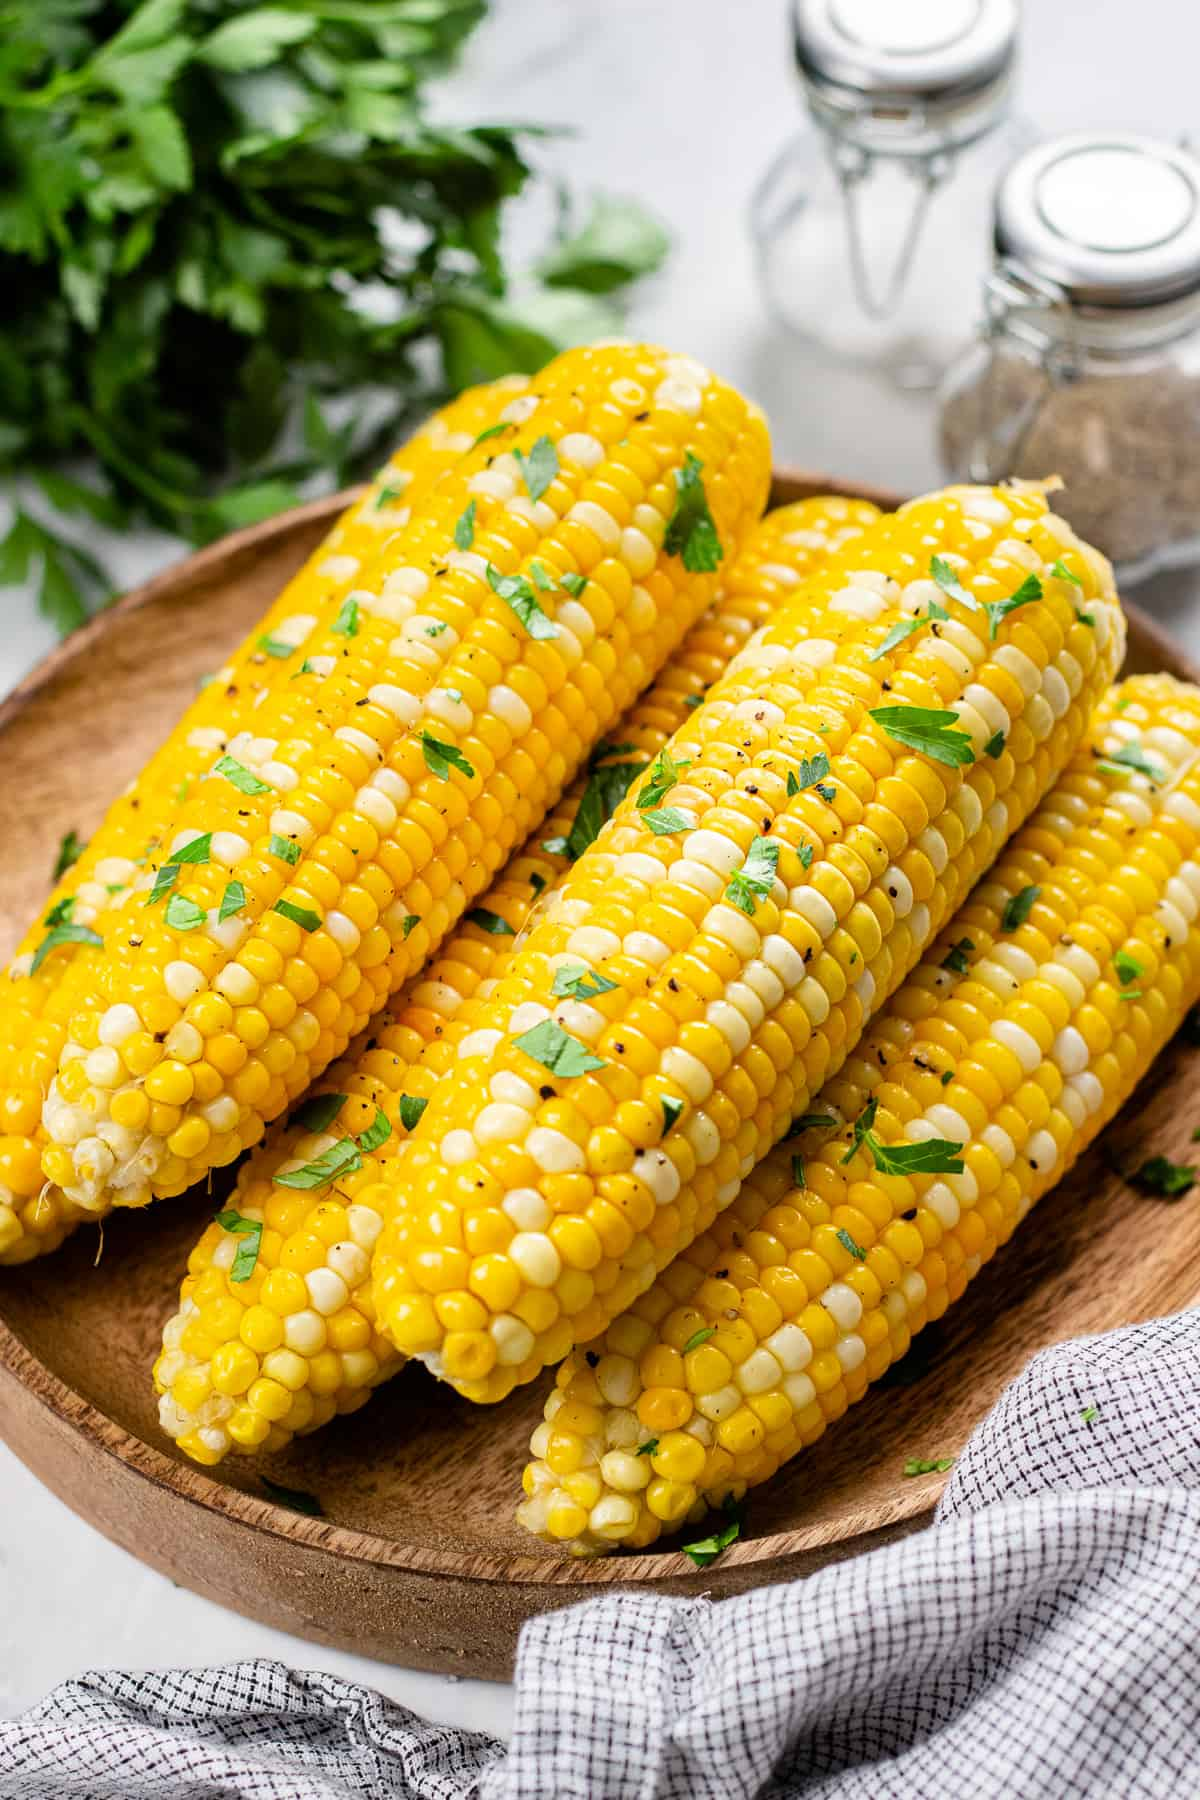 Roasted corn, topped with chopped parsley, on a wooden plate.